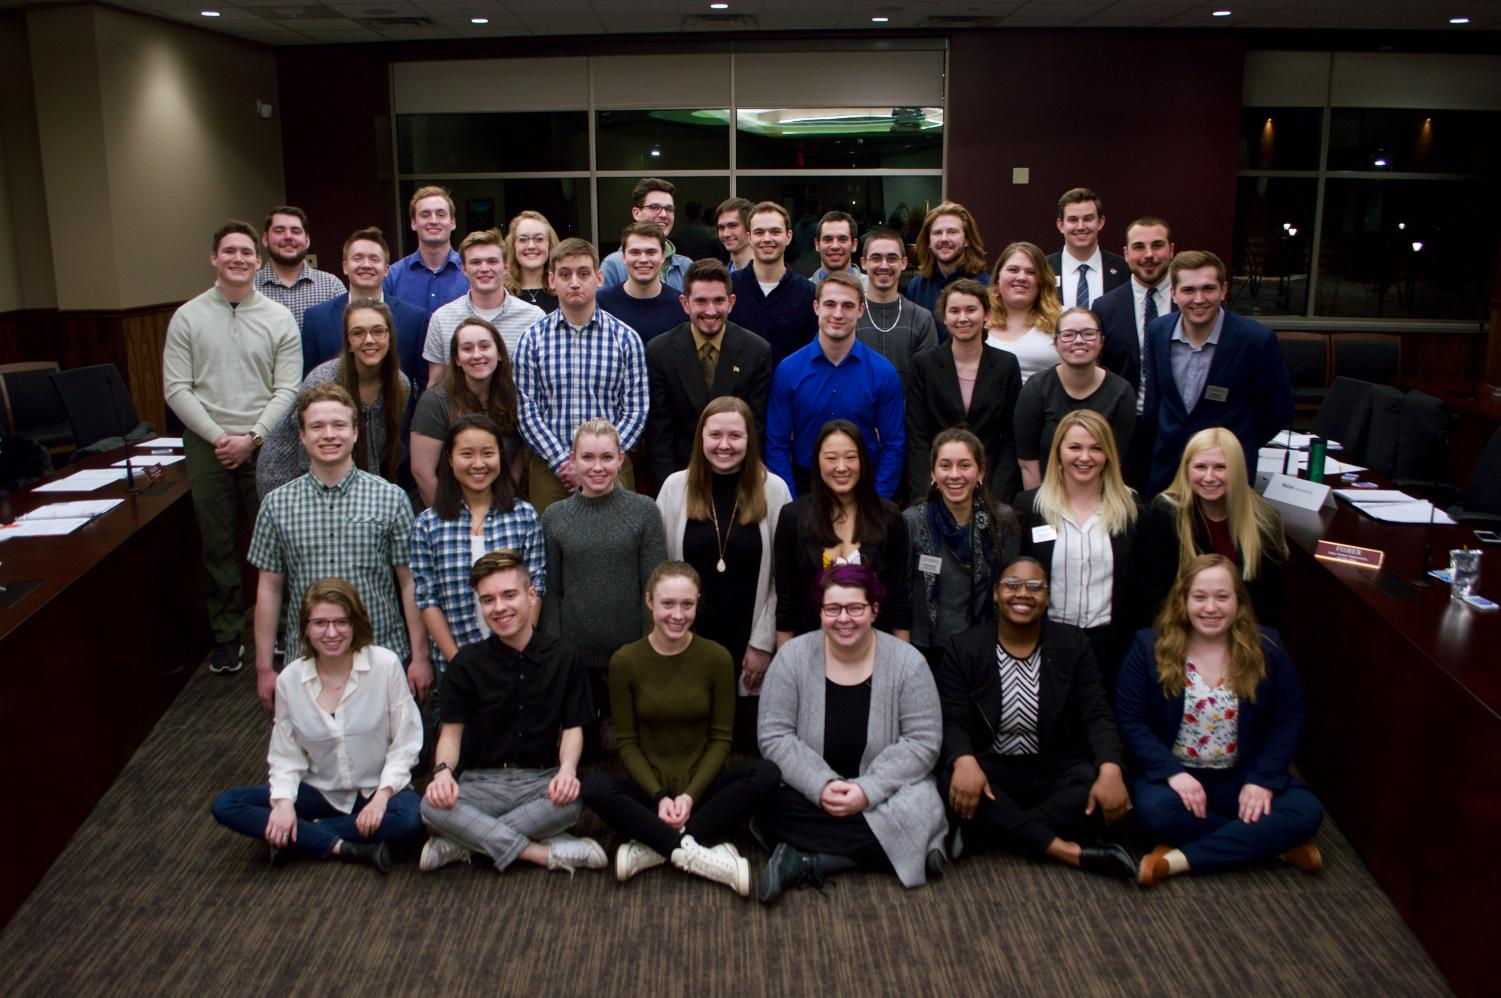 Student Senate members pose for their spring 2019 photo, taken by Carly Rundle-Borchert